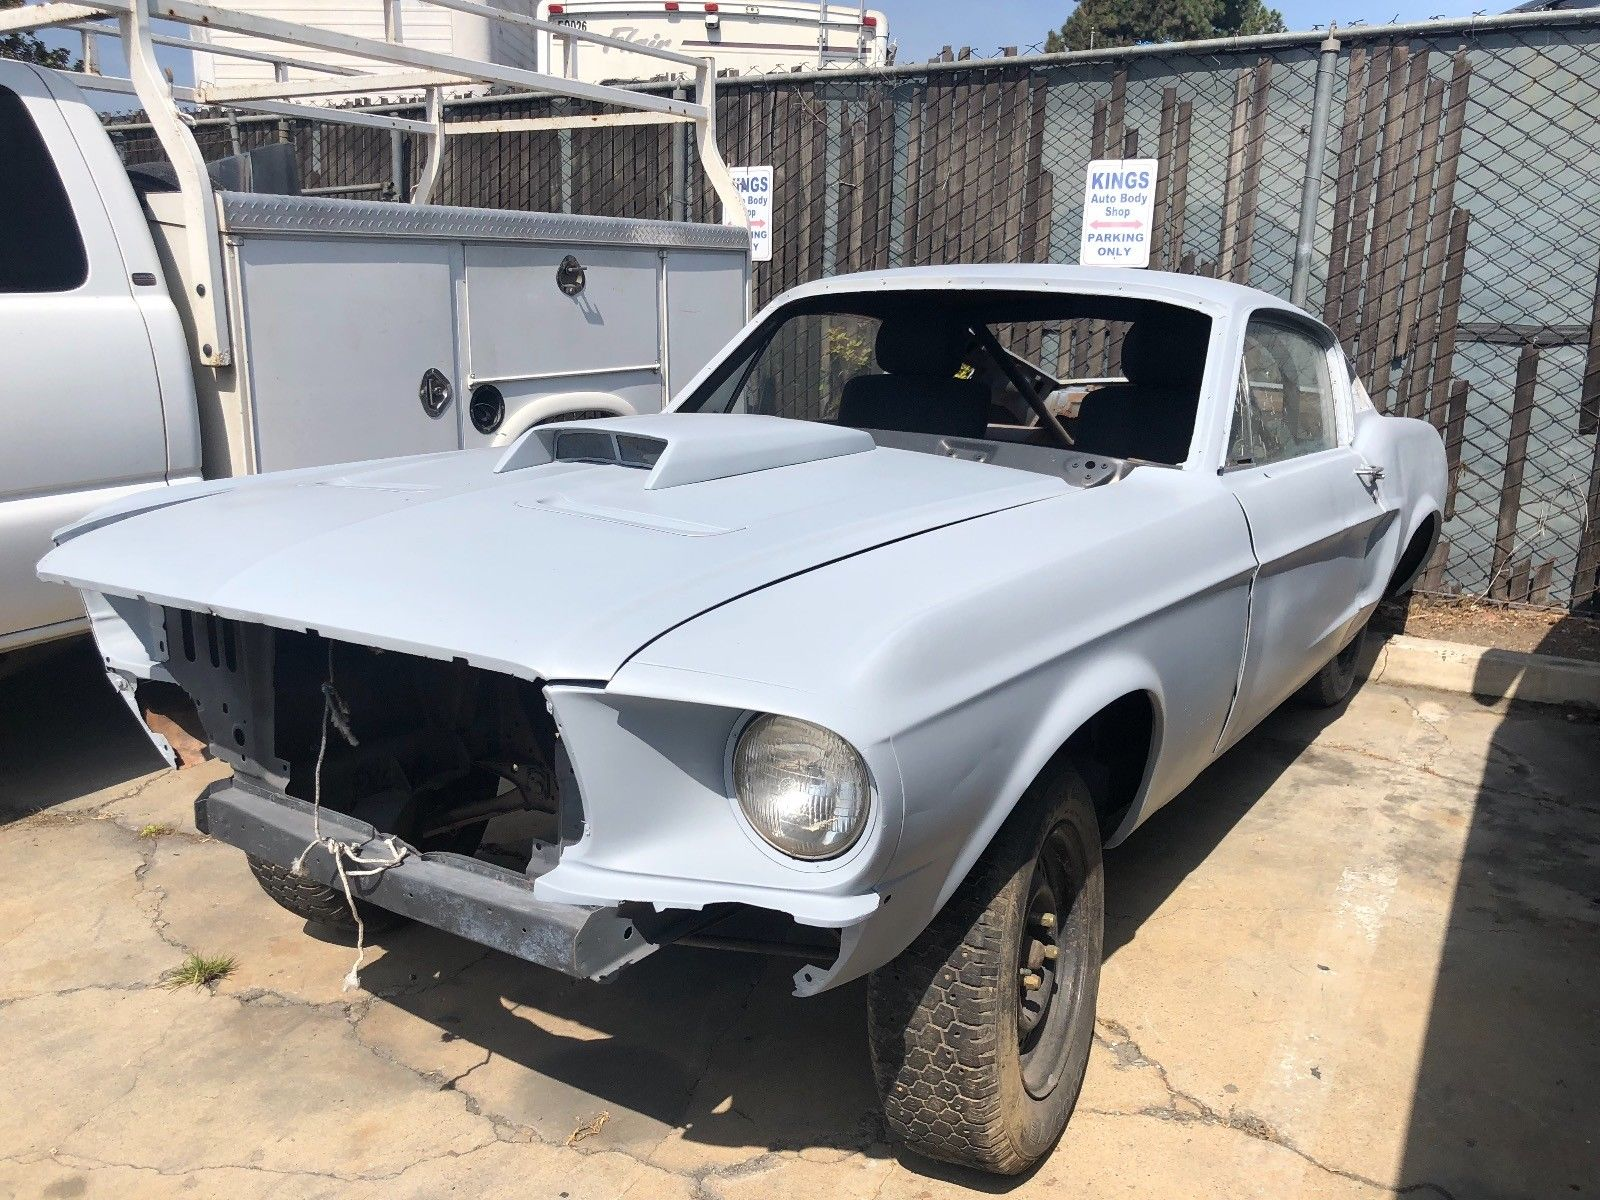 Mustang sales have once again beaten out the camaro's. Used 1968 Ford Mustang Gt 1968 Ford Mustang Fastback Rolling Chassis Solid Project Car 2019 Is In Stock And For Sale Mycarboard Com